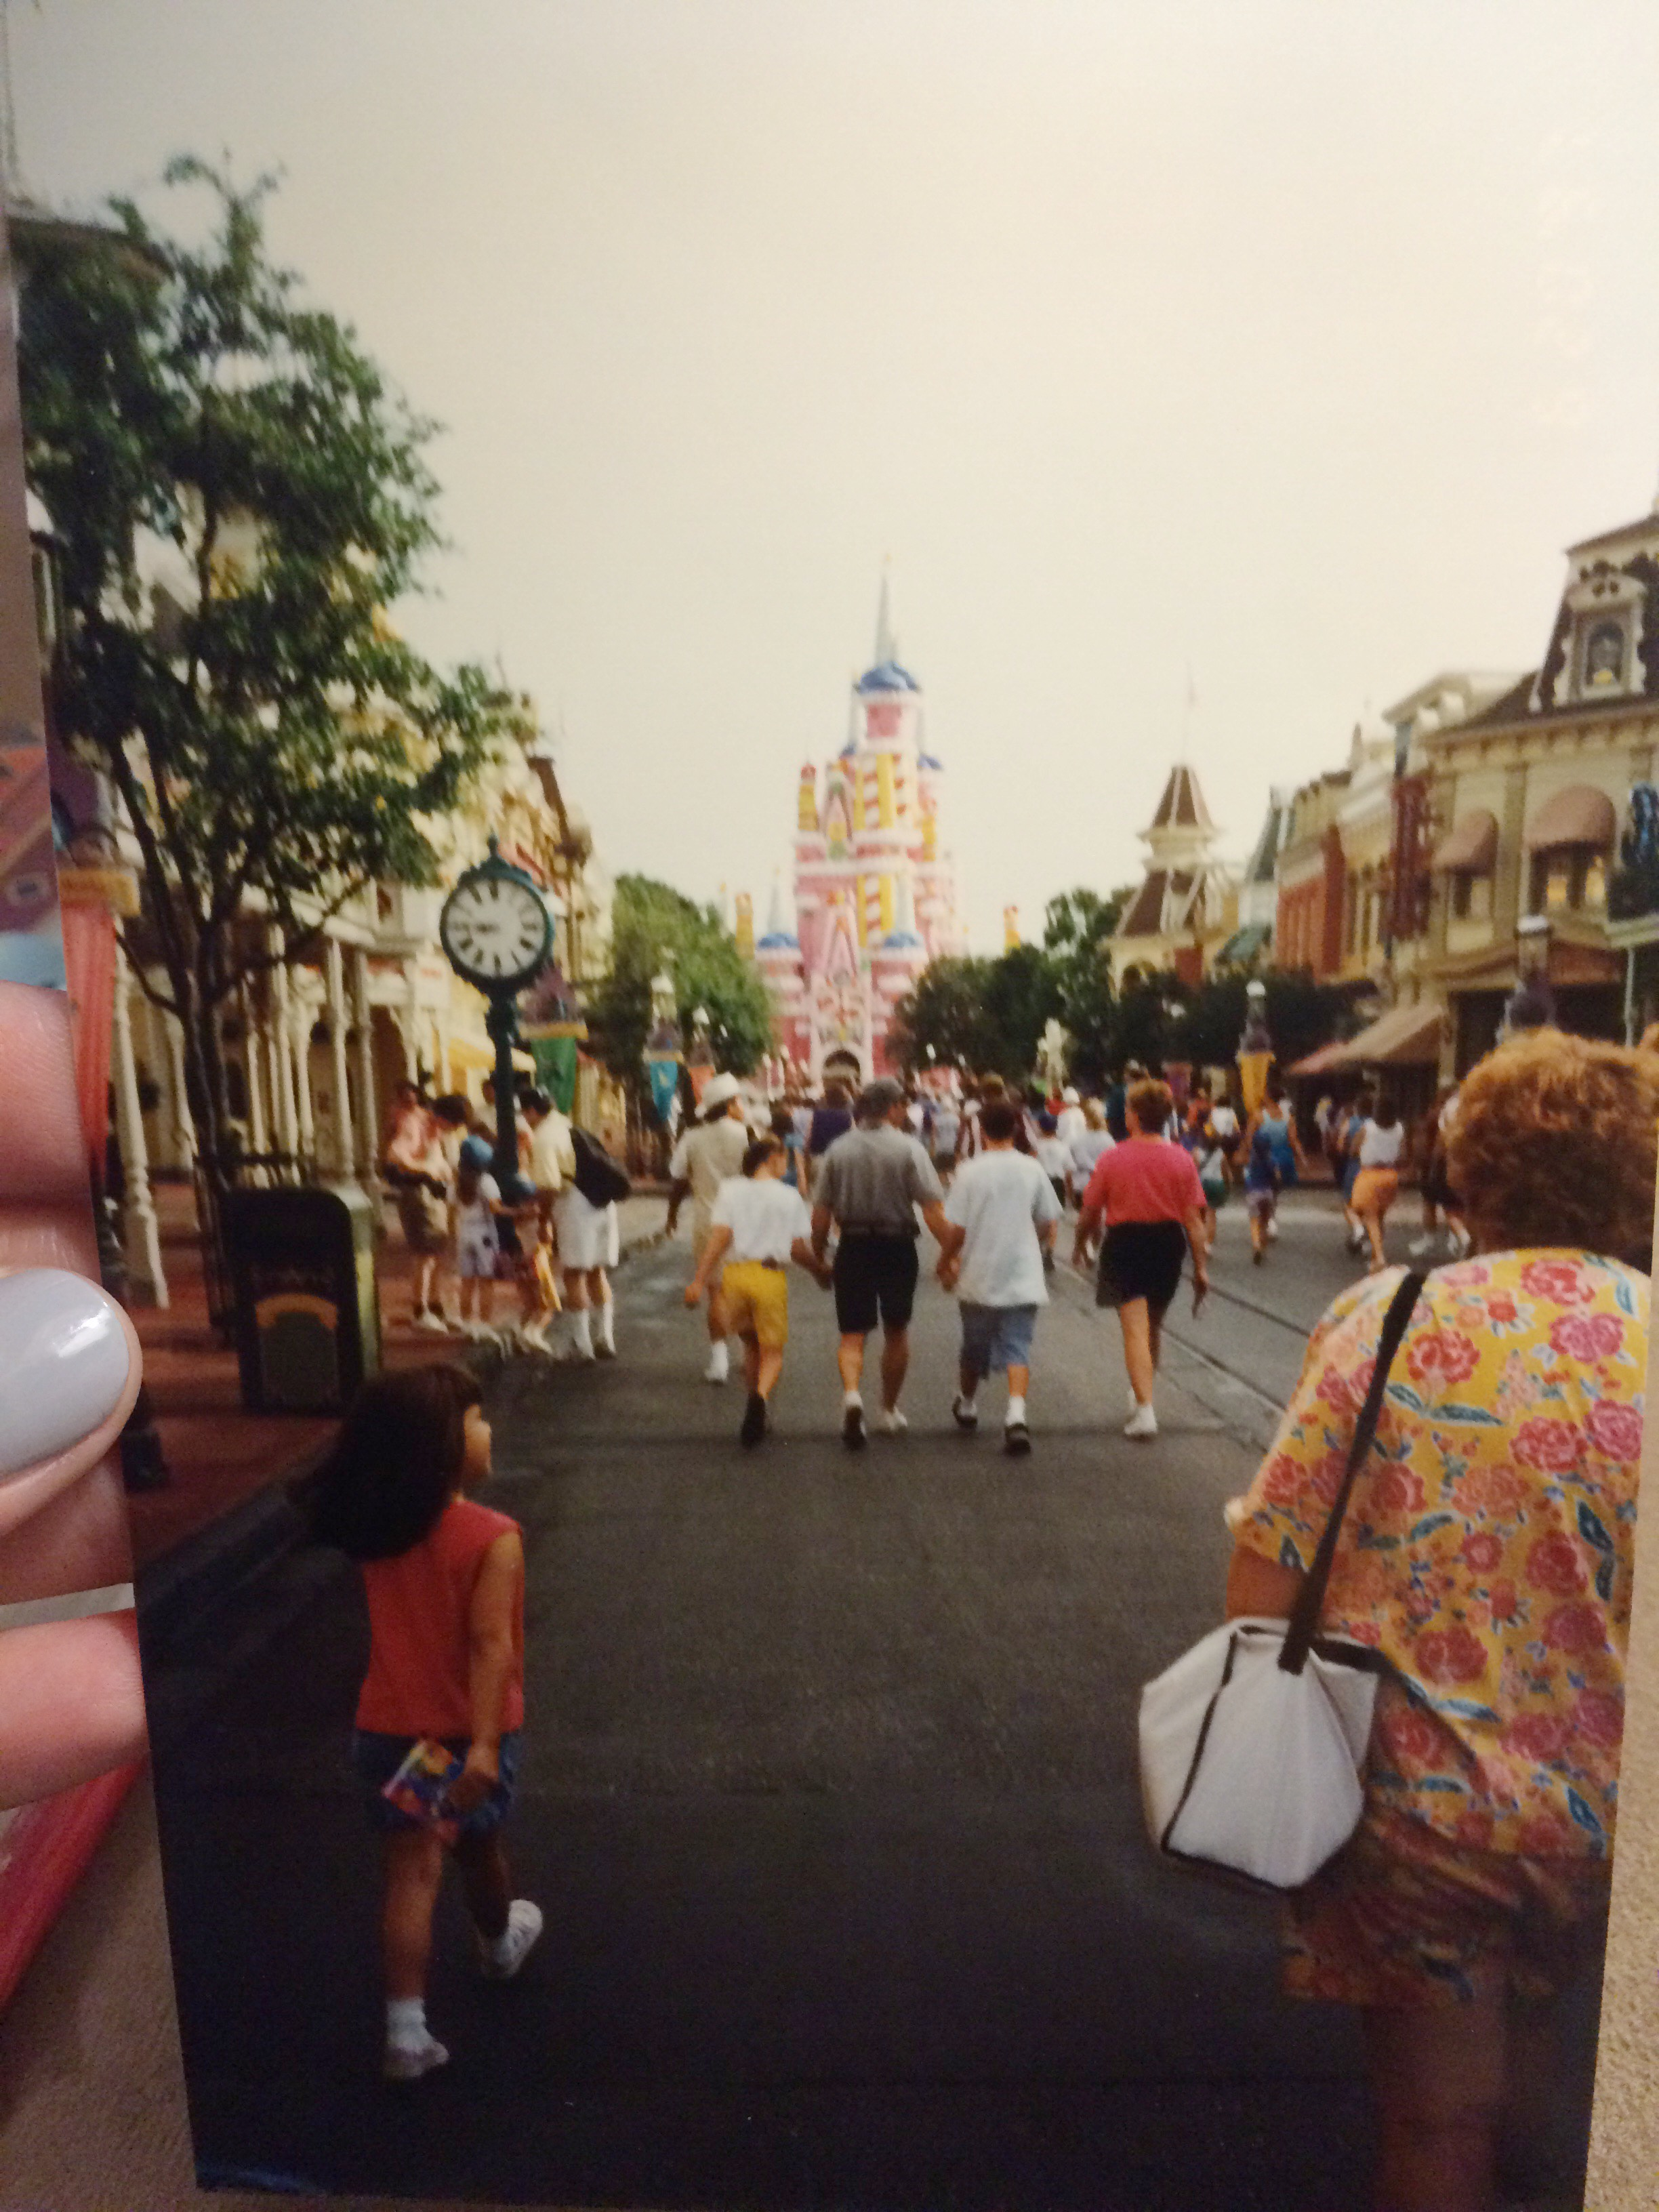 Also, what is now my favorite photo of myself at DIsney that i've found! Just walking casually down Main Street with my Lisa Frank autograph book! And the castle was my favorite way it ever looked!